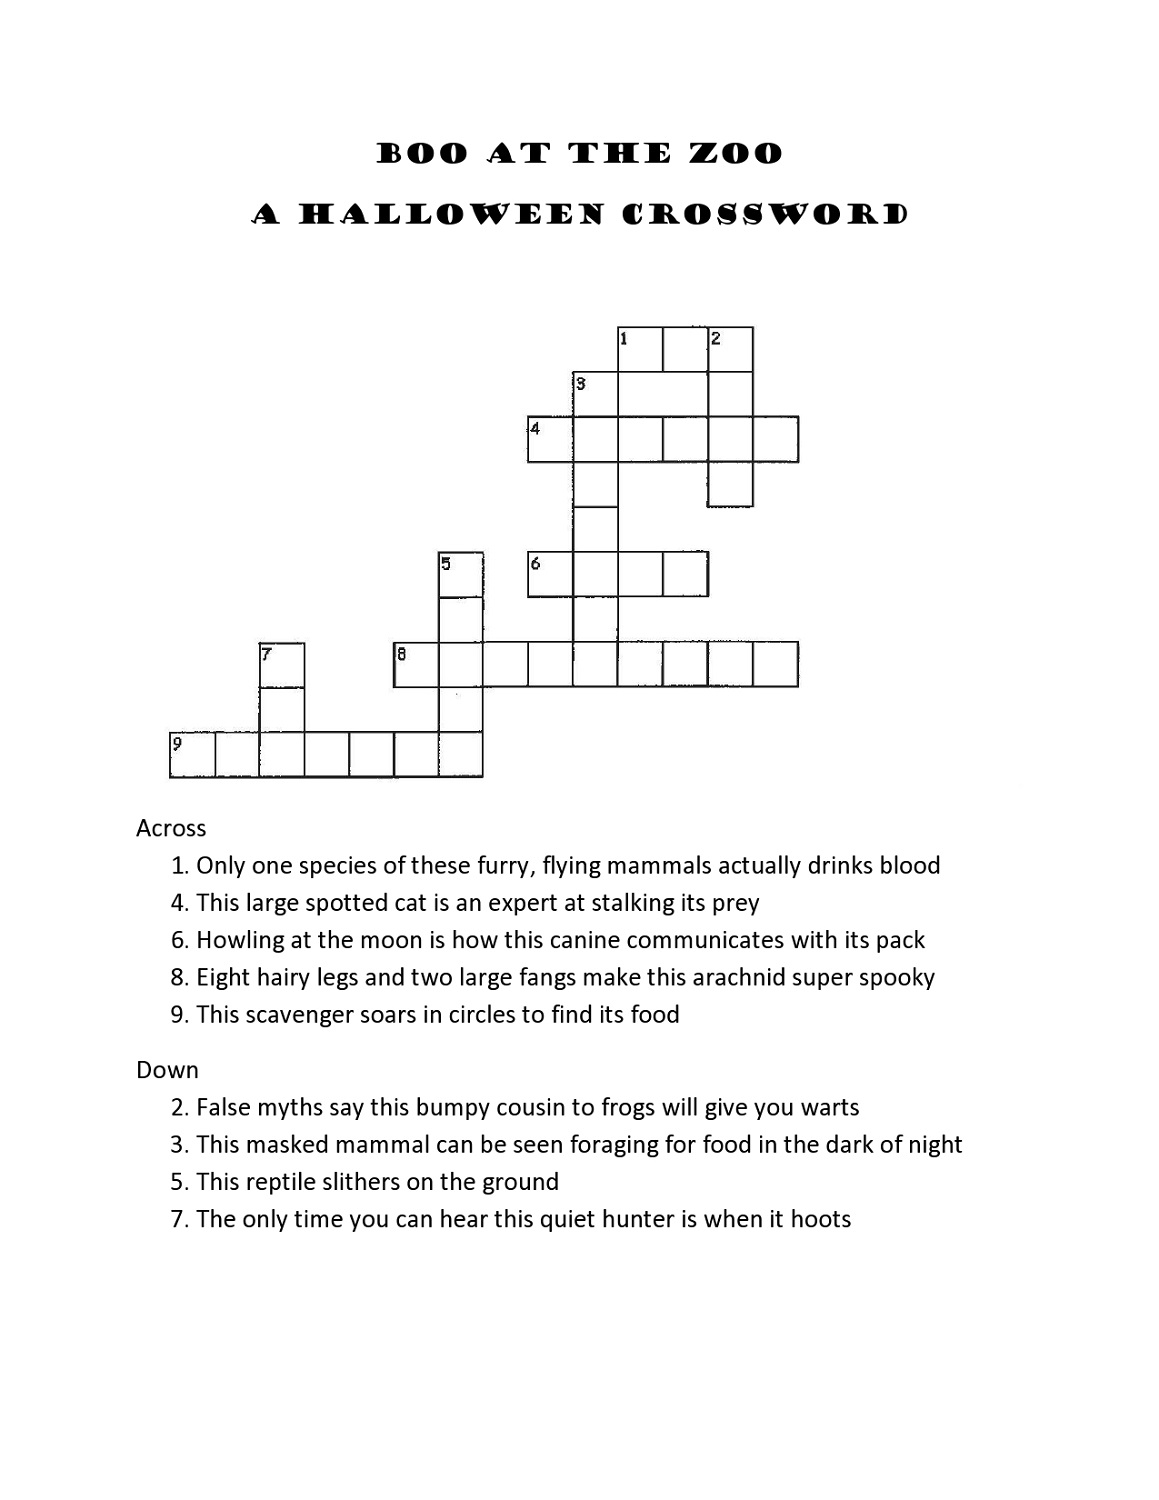 Crossword Puzzles For 5th Graders